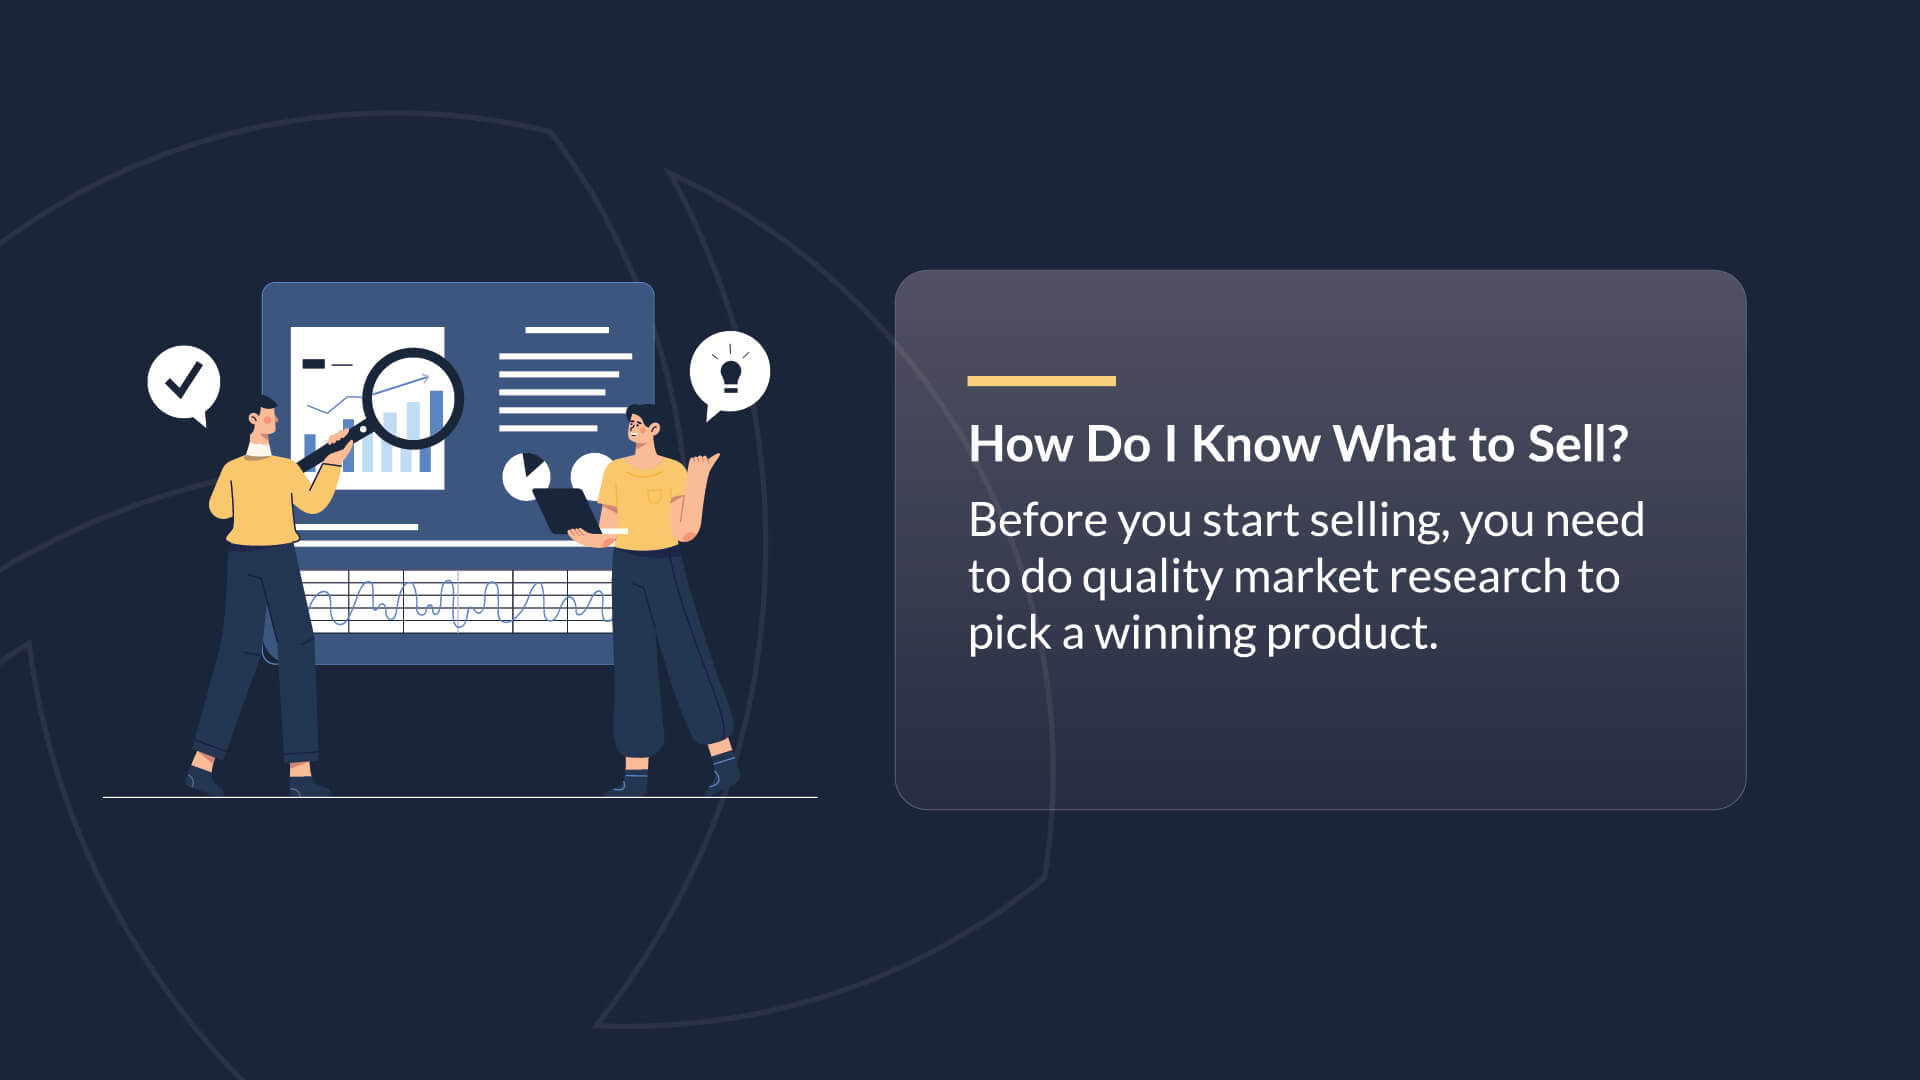 How do I know what to sell? Before you start selling, you need to do quality market research to pick a winning product.